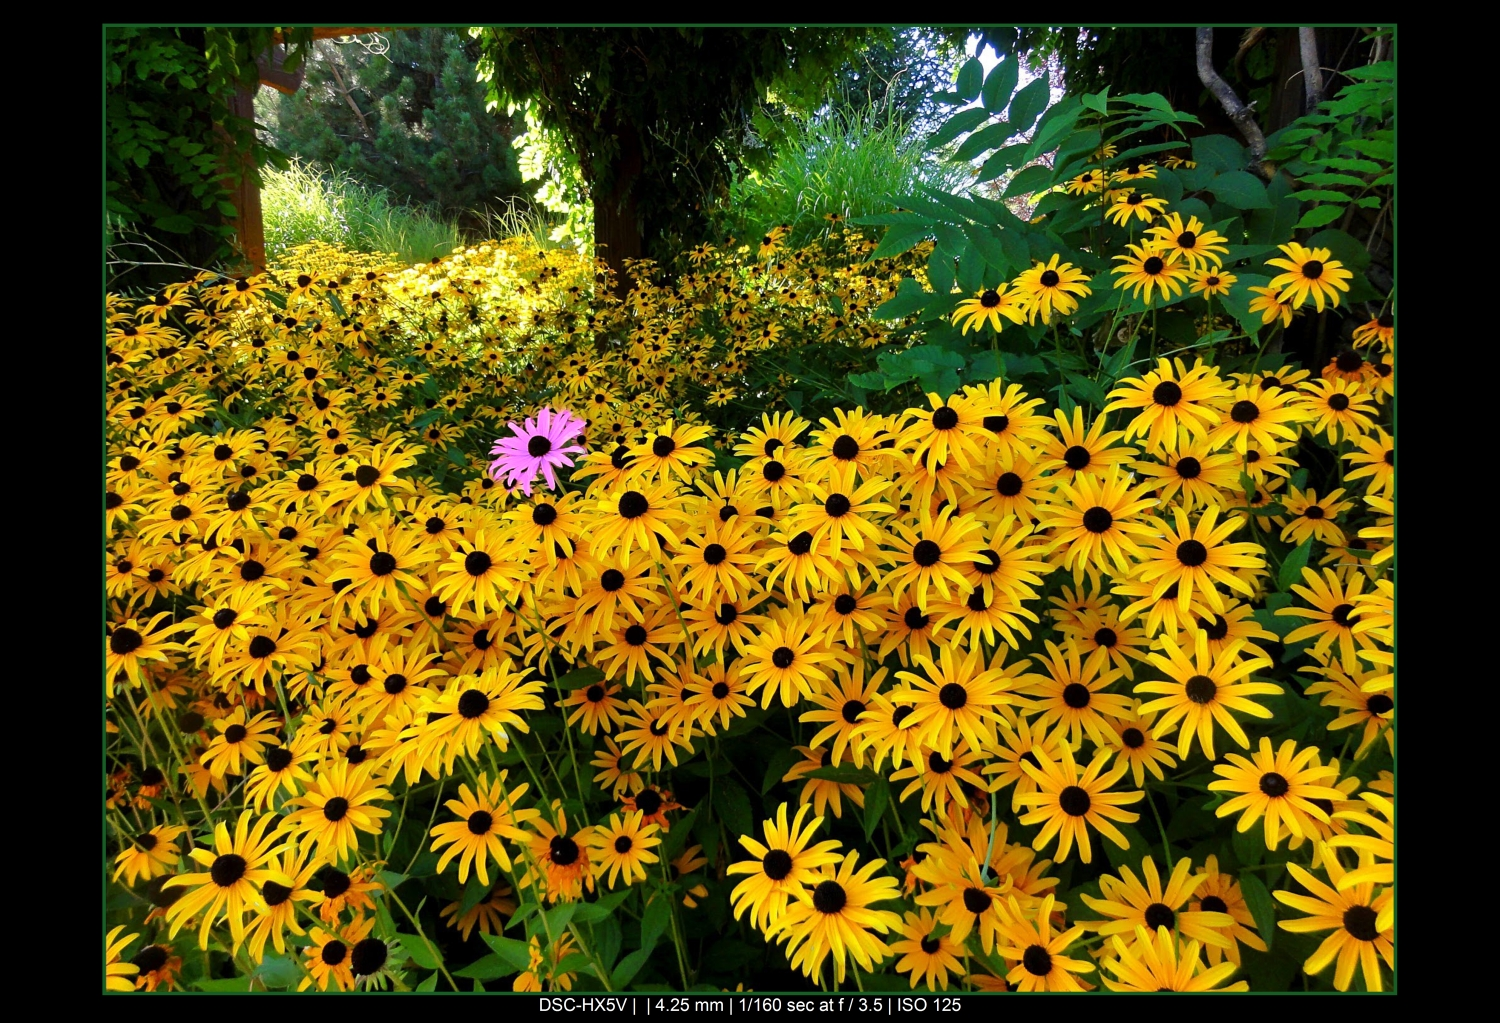 The rule of odds in photography - one pink flower surrounded by yellow flowers